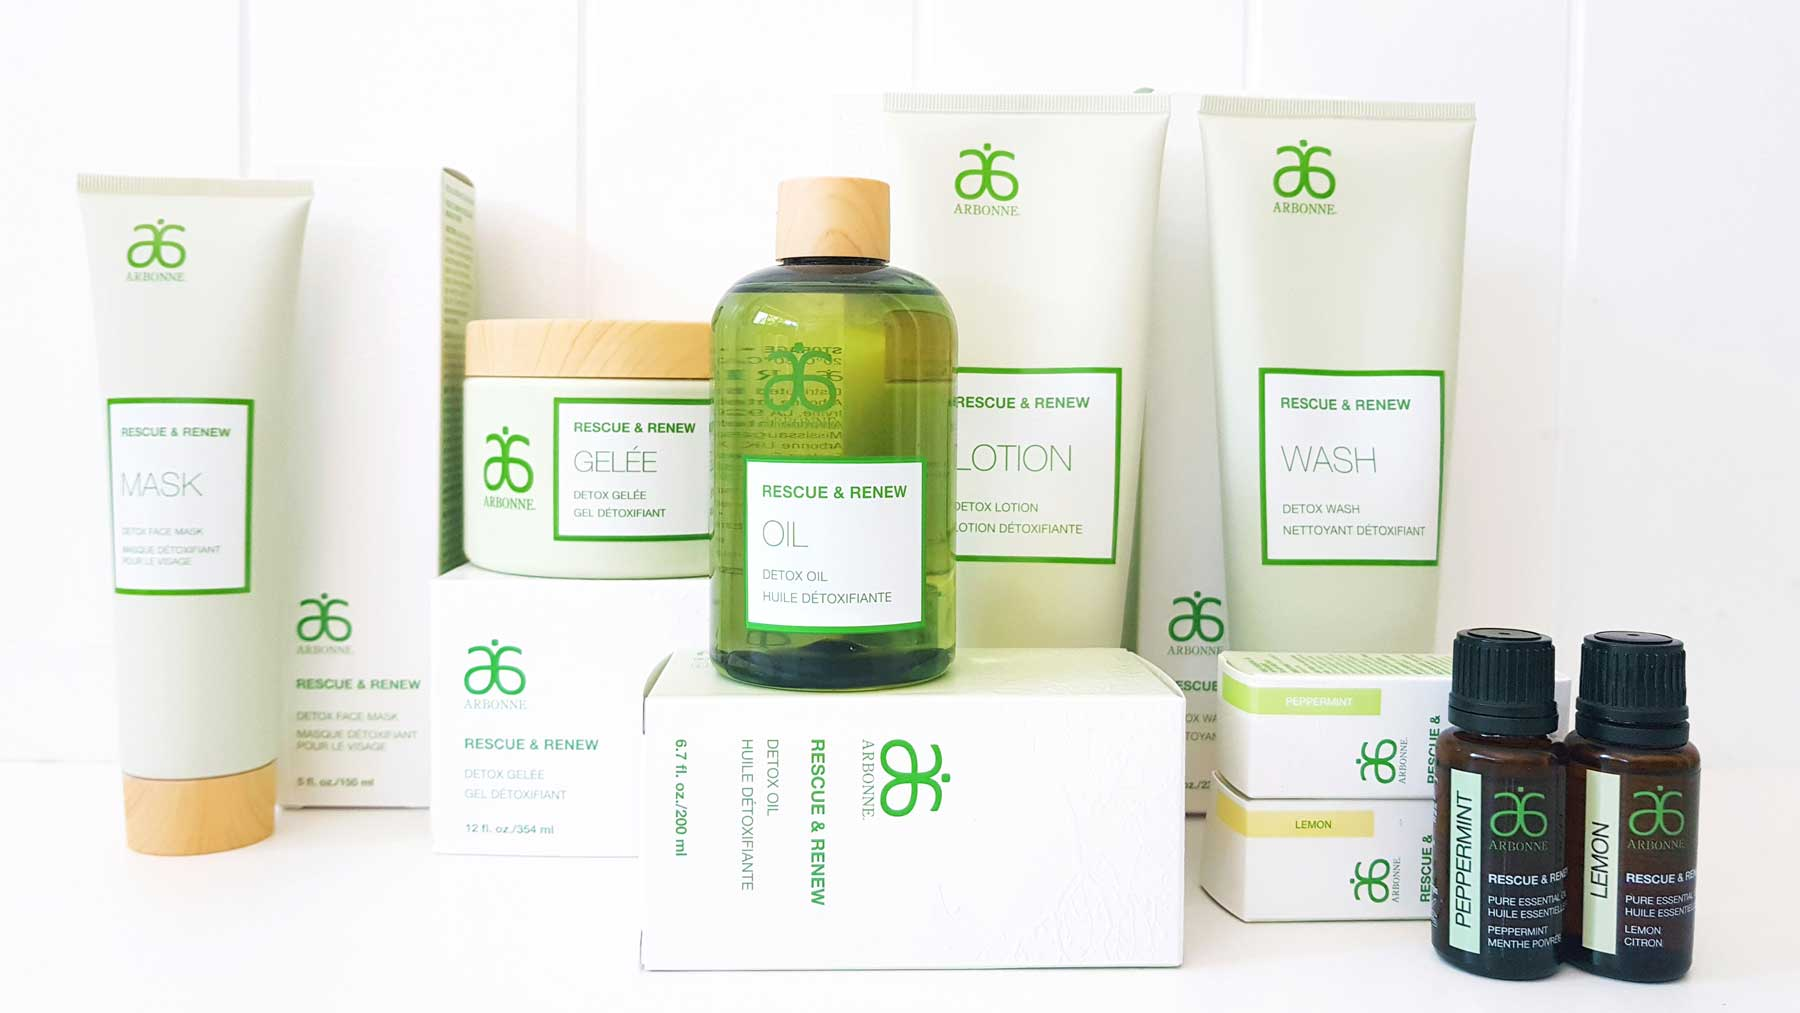 arbonne rescue and renew reviews